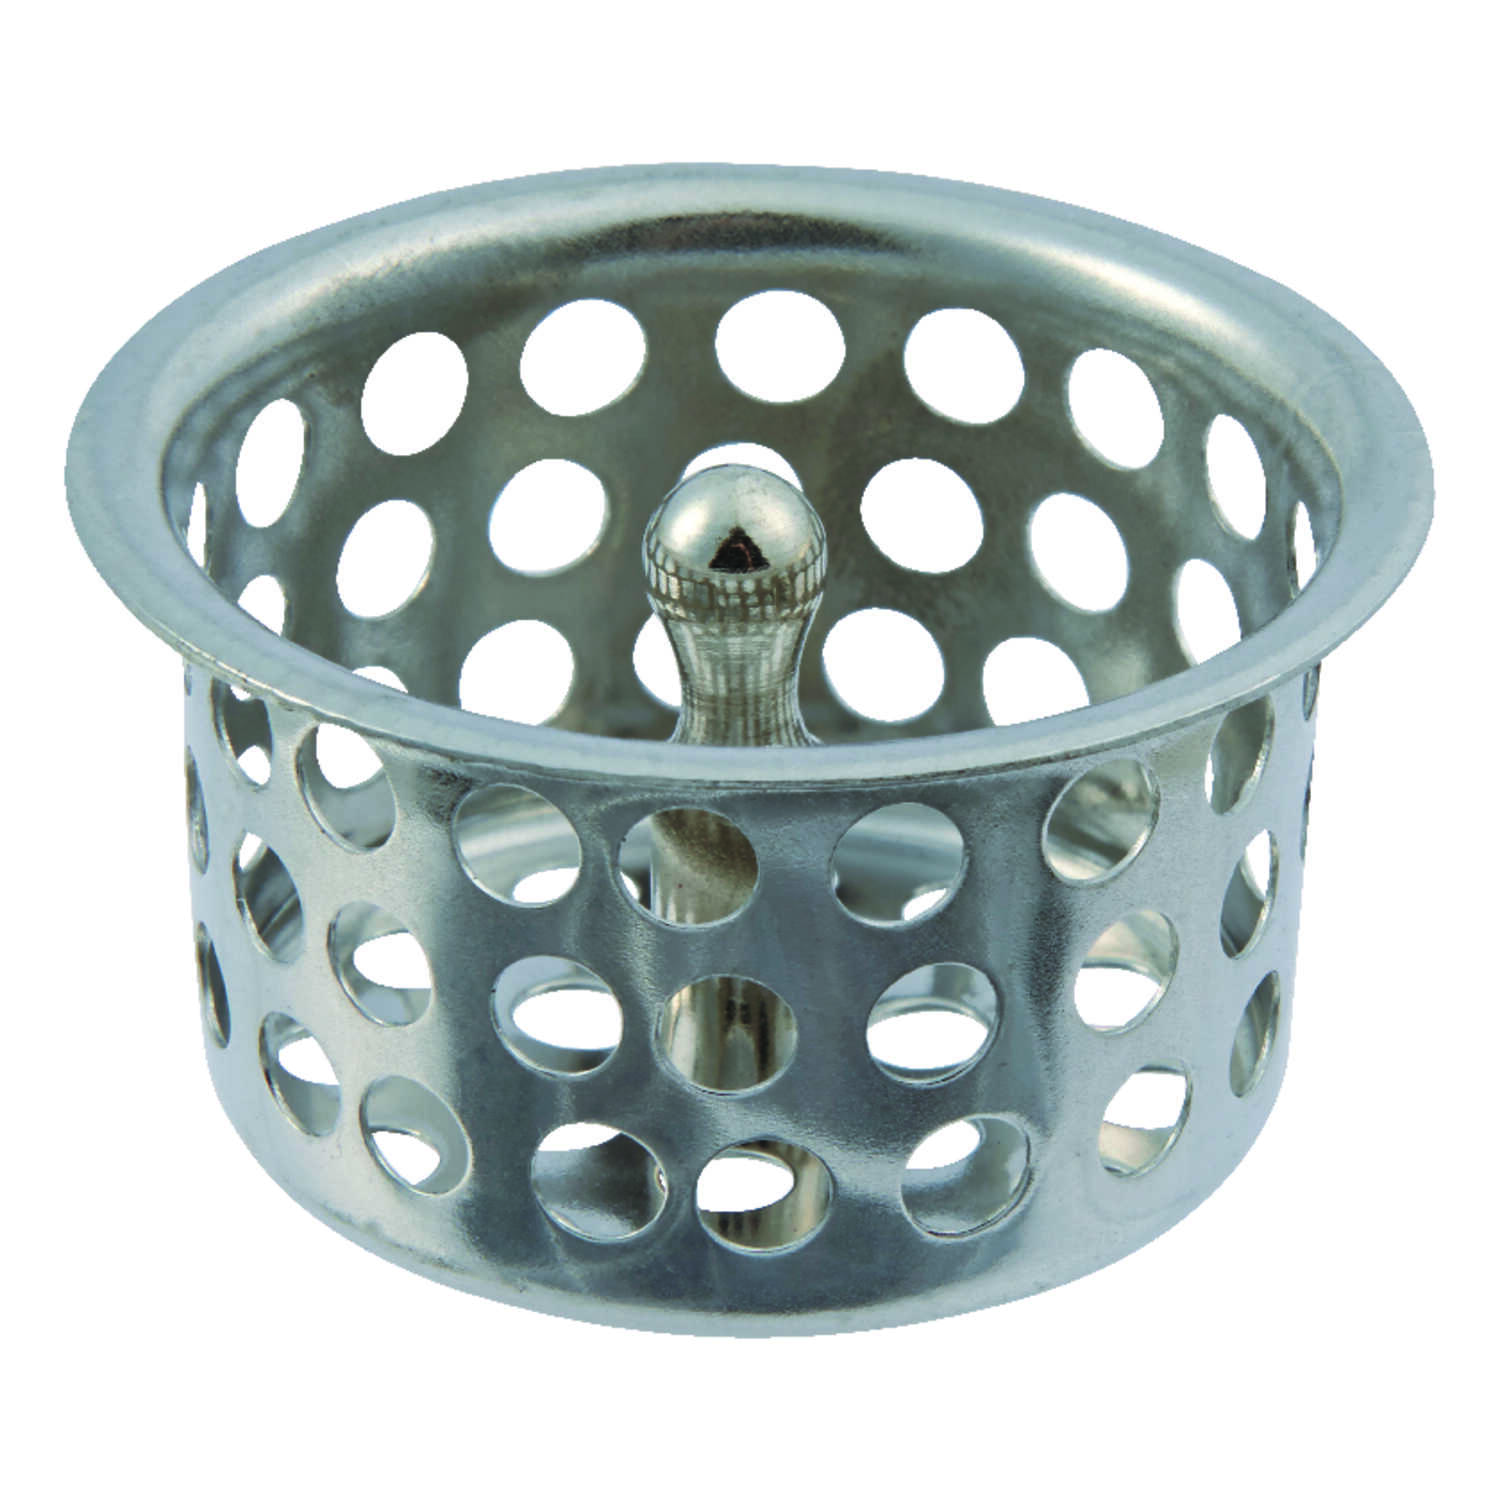 Ace  1-1/2 in. Dia. Stainless Steel  Crumb Cup